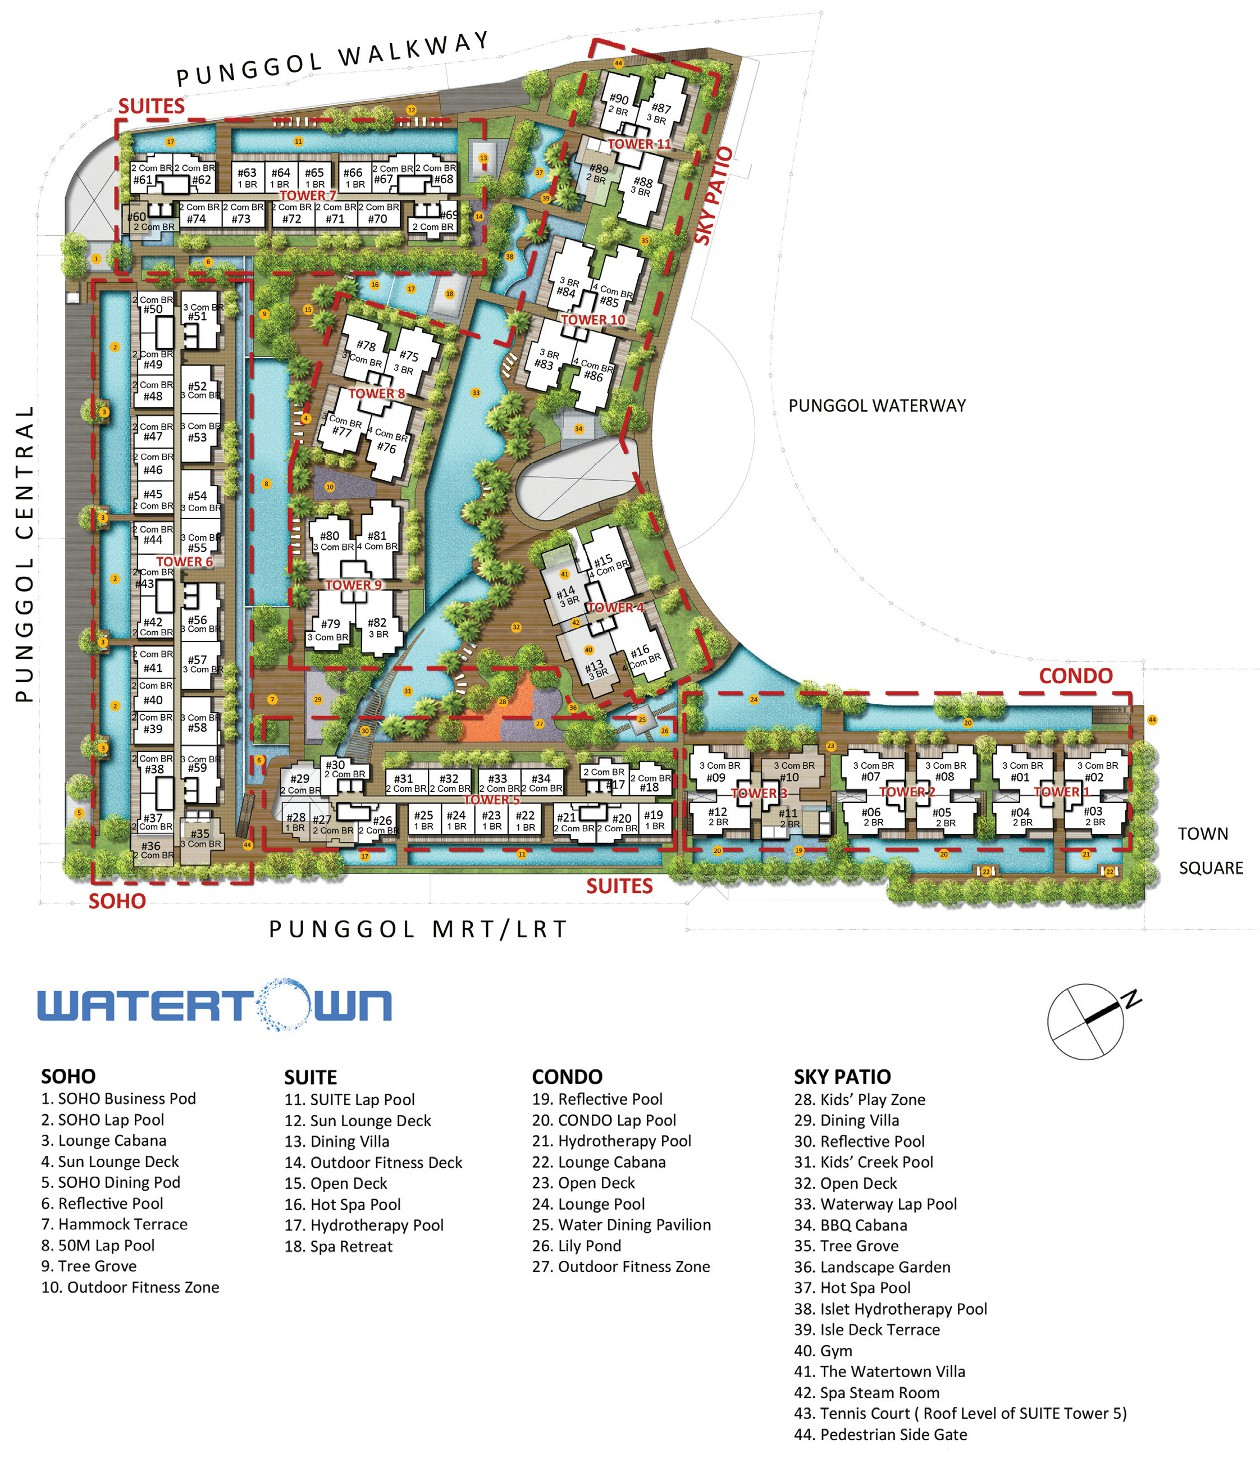 Watertown Condo Singapore - Site Layout Plan